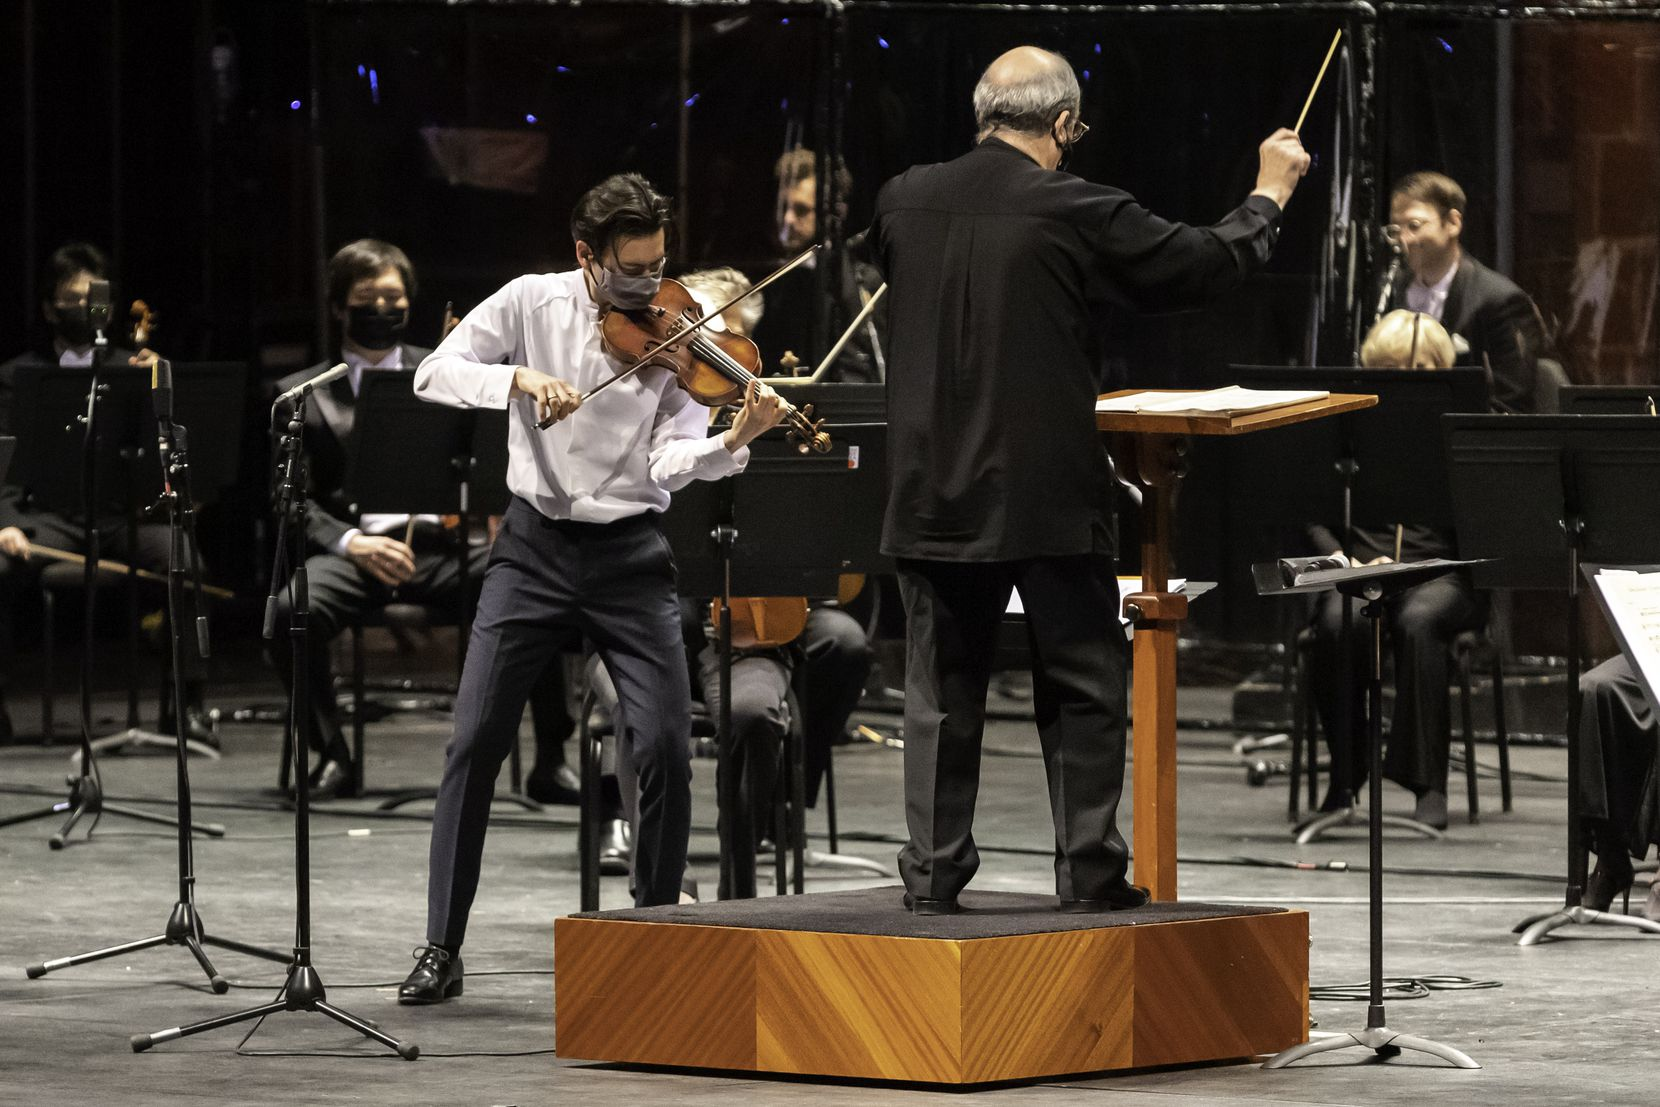 Principal guest conductor Robert Spano leads the Fort Worth Symphony Orchestra alongside violinist Stefan Jackiw (left) at the Will Rogers Memorial Auditorium in Fort Worth on Jan. 8.